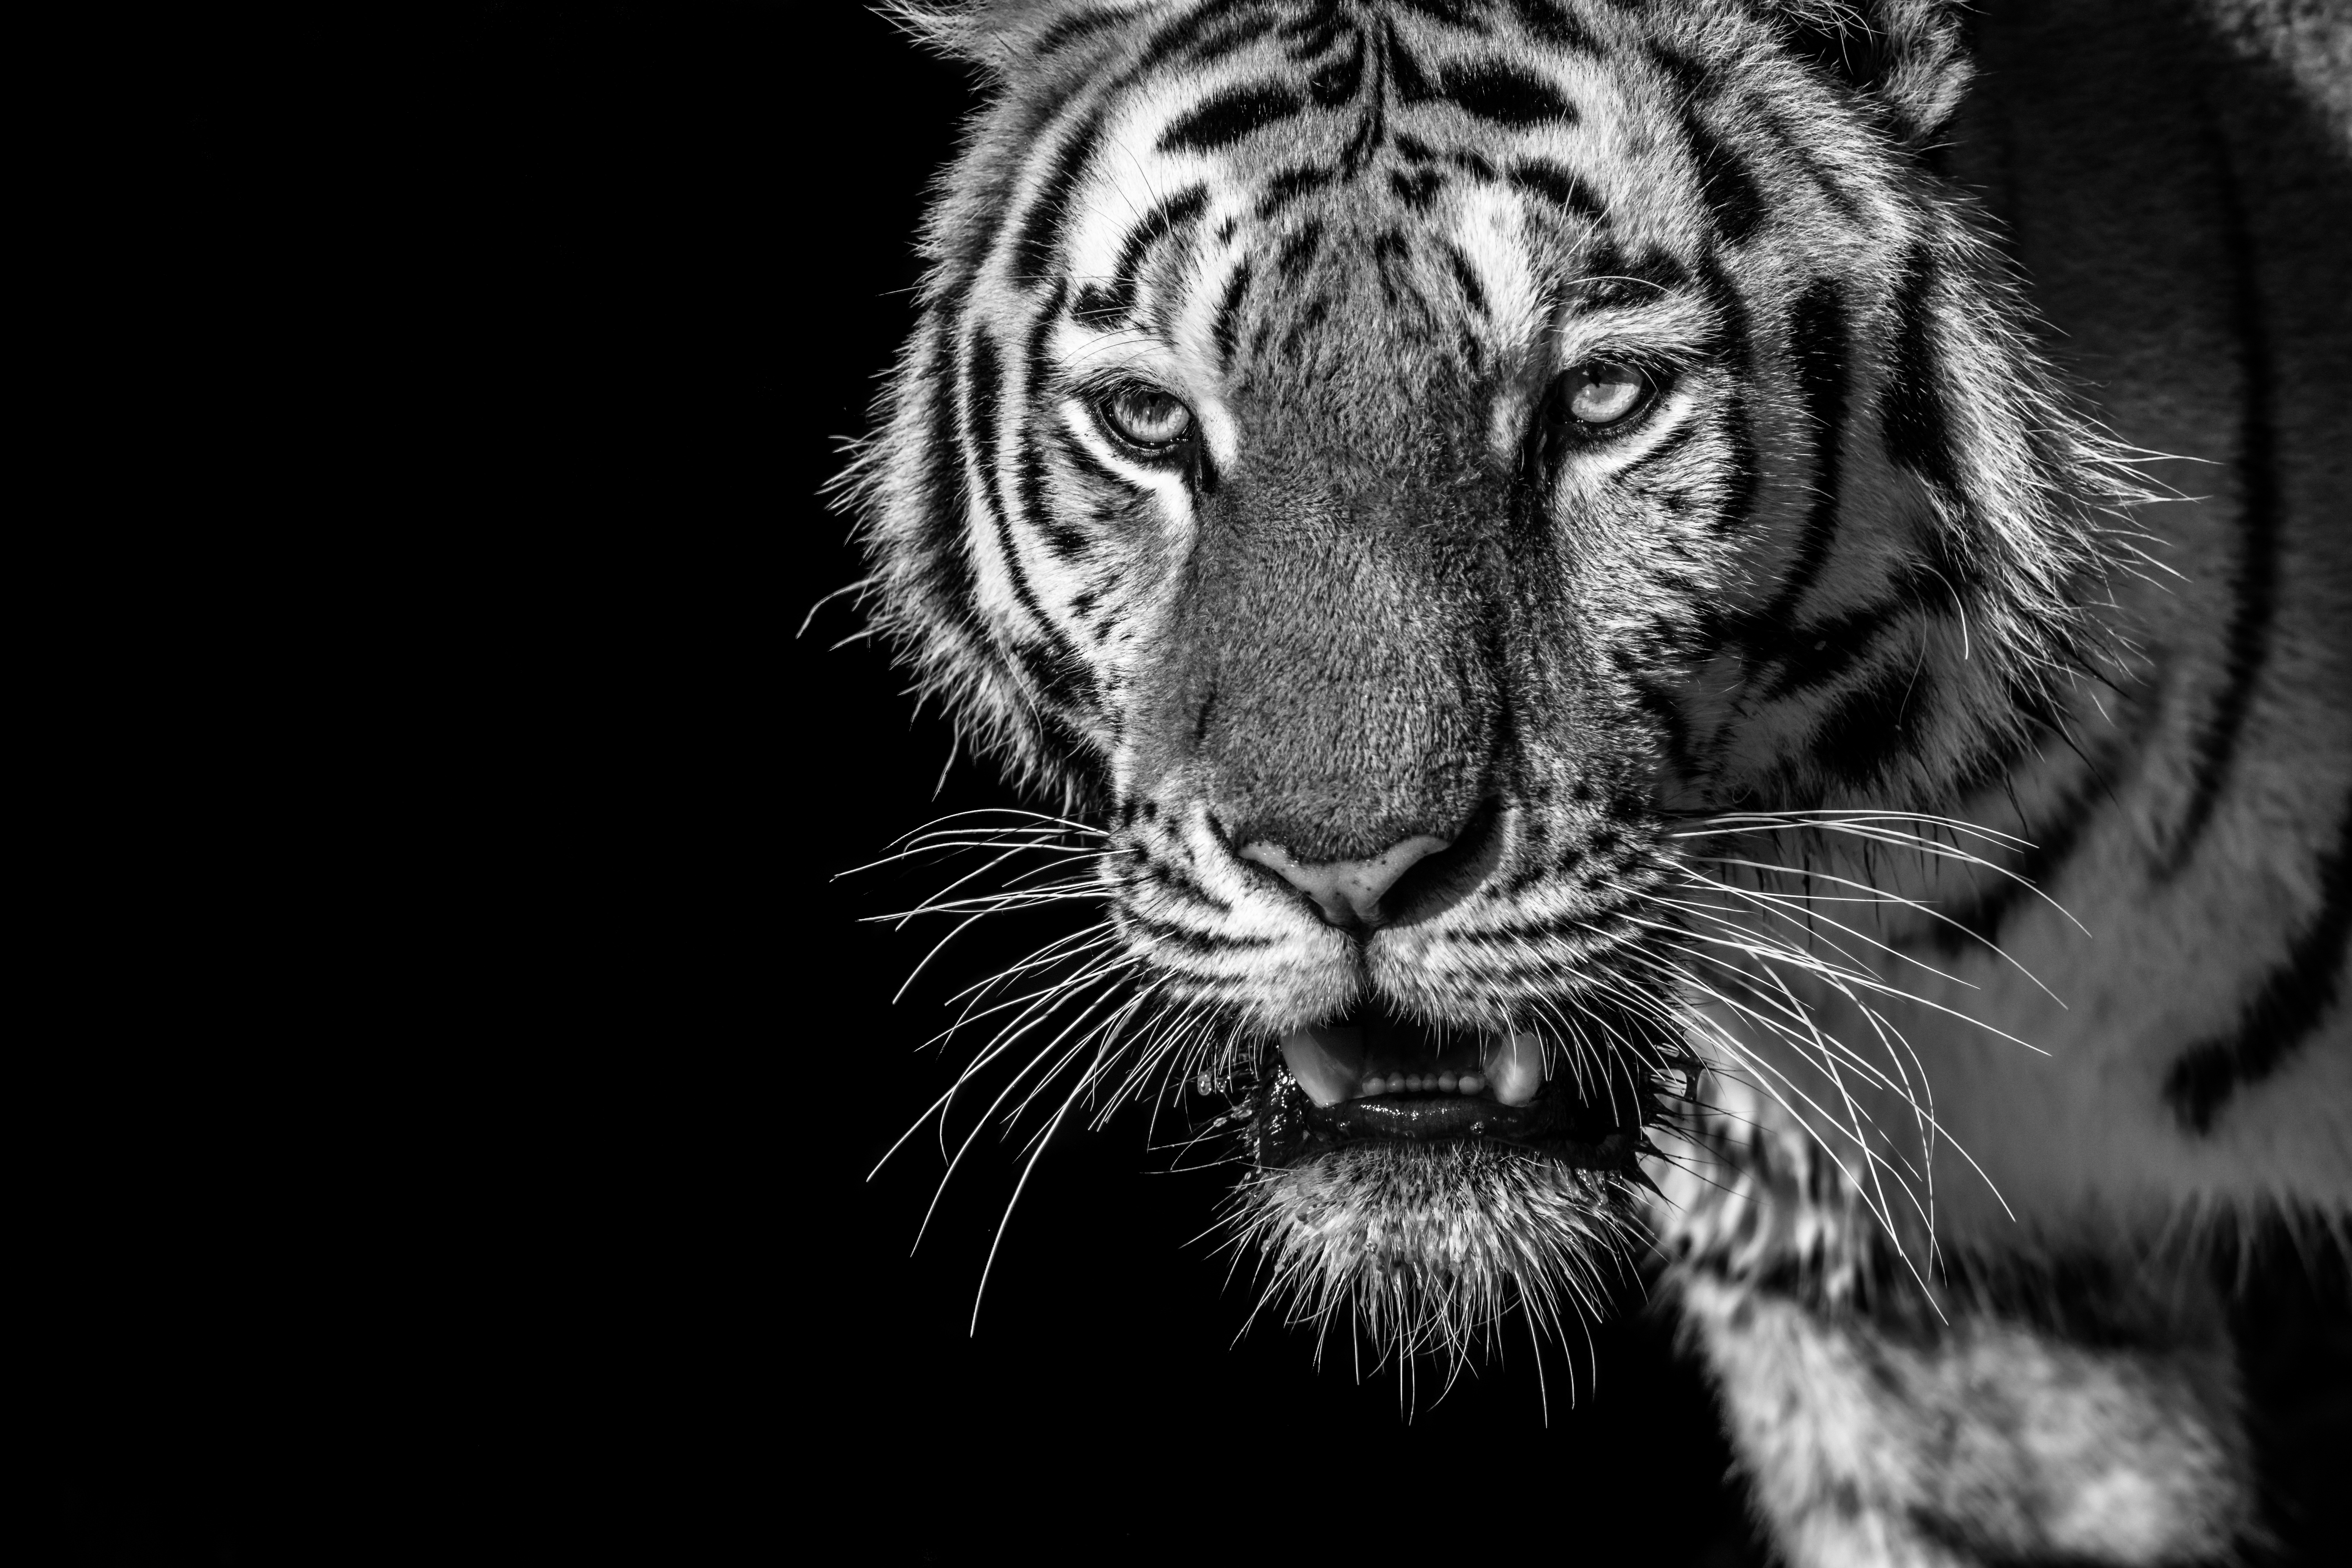 122477 Screensavers and Wallpapers Striped for phone. Download Animals, Striped, Predator, Bw, Chb, Tiger, Wild, Looks pictures for free